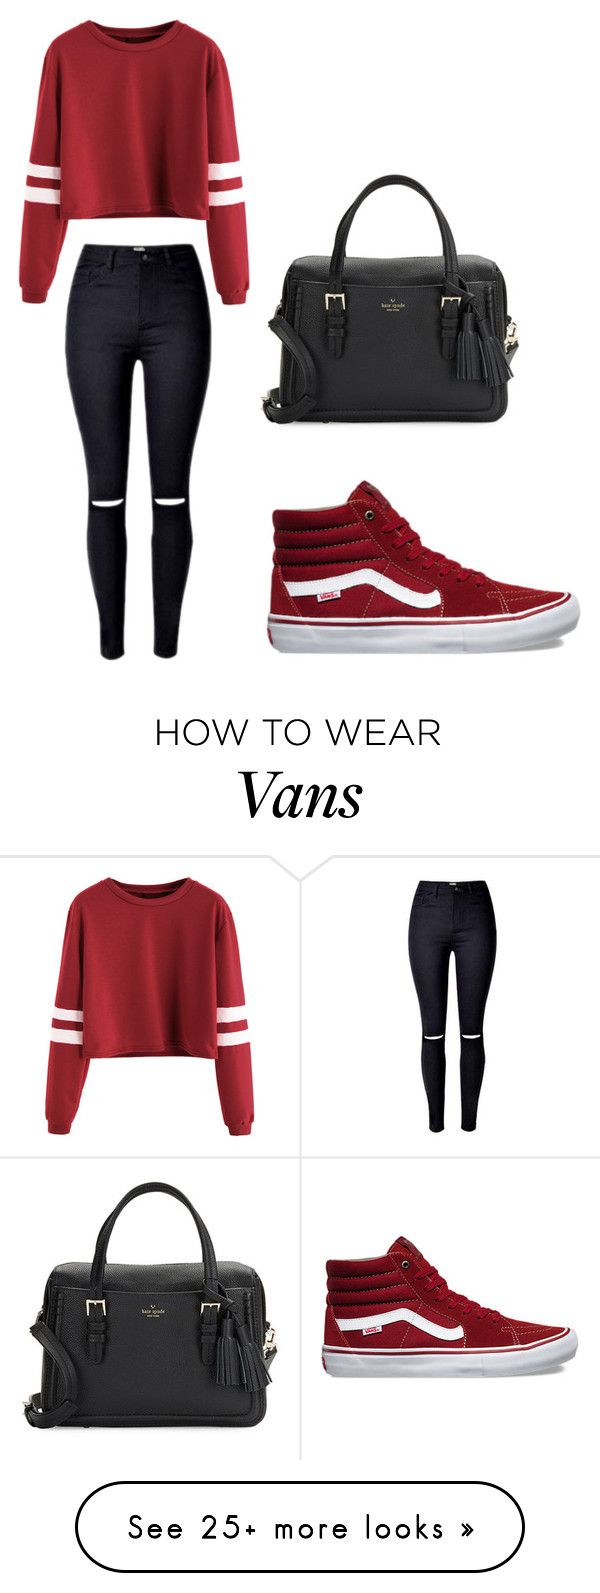 """i gotta have"" by iluvfashi0n on Polyvore featuring Vans and Kate Spade"